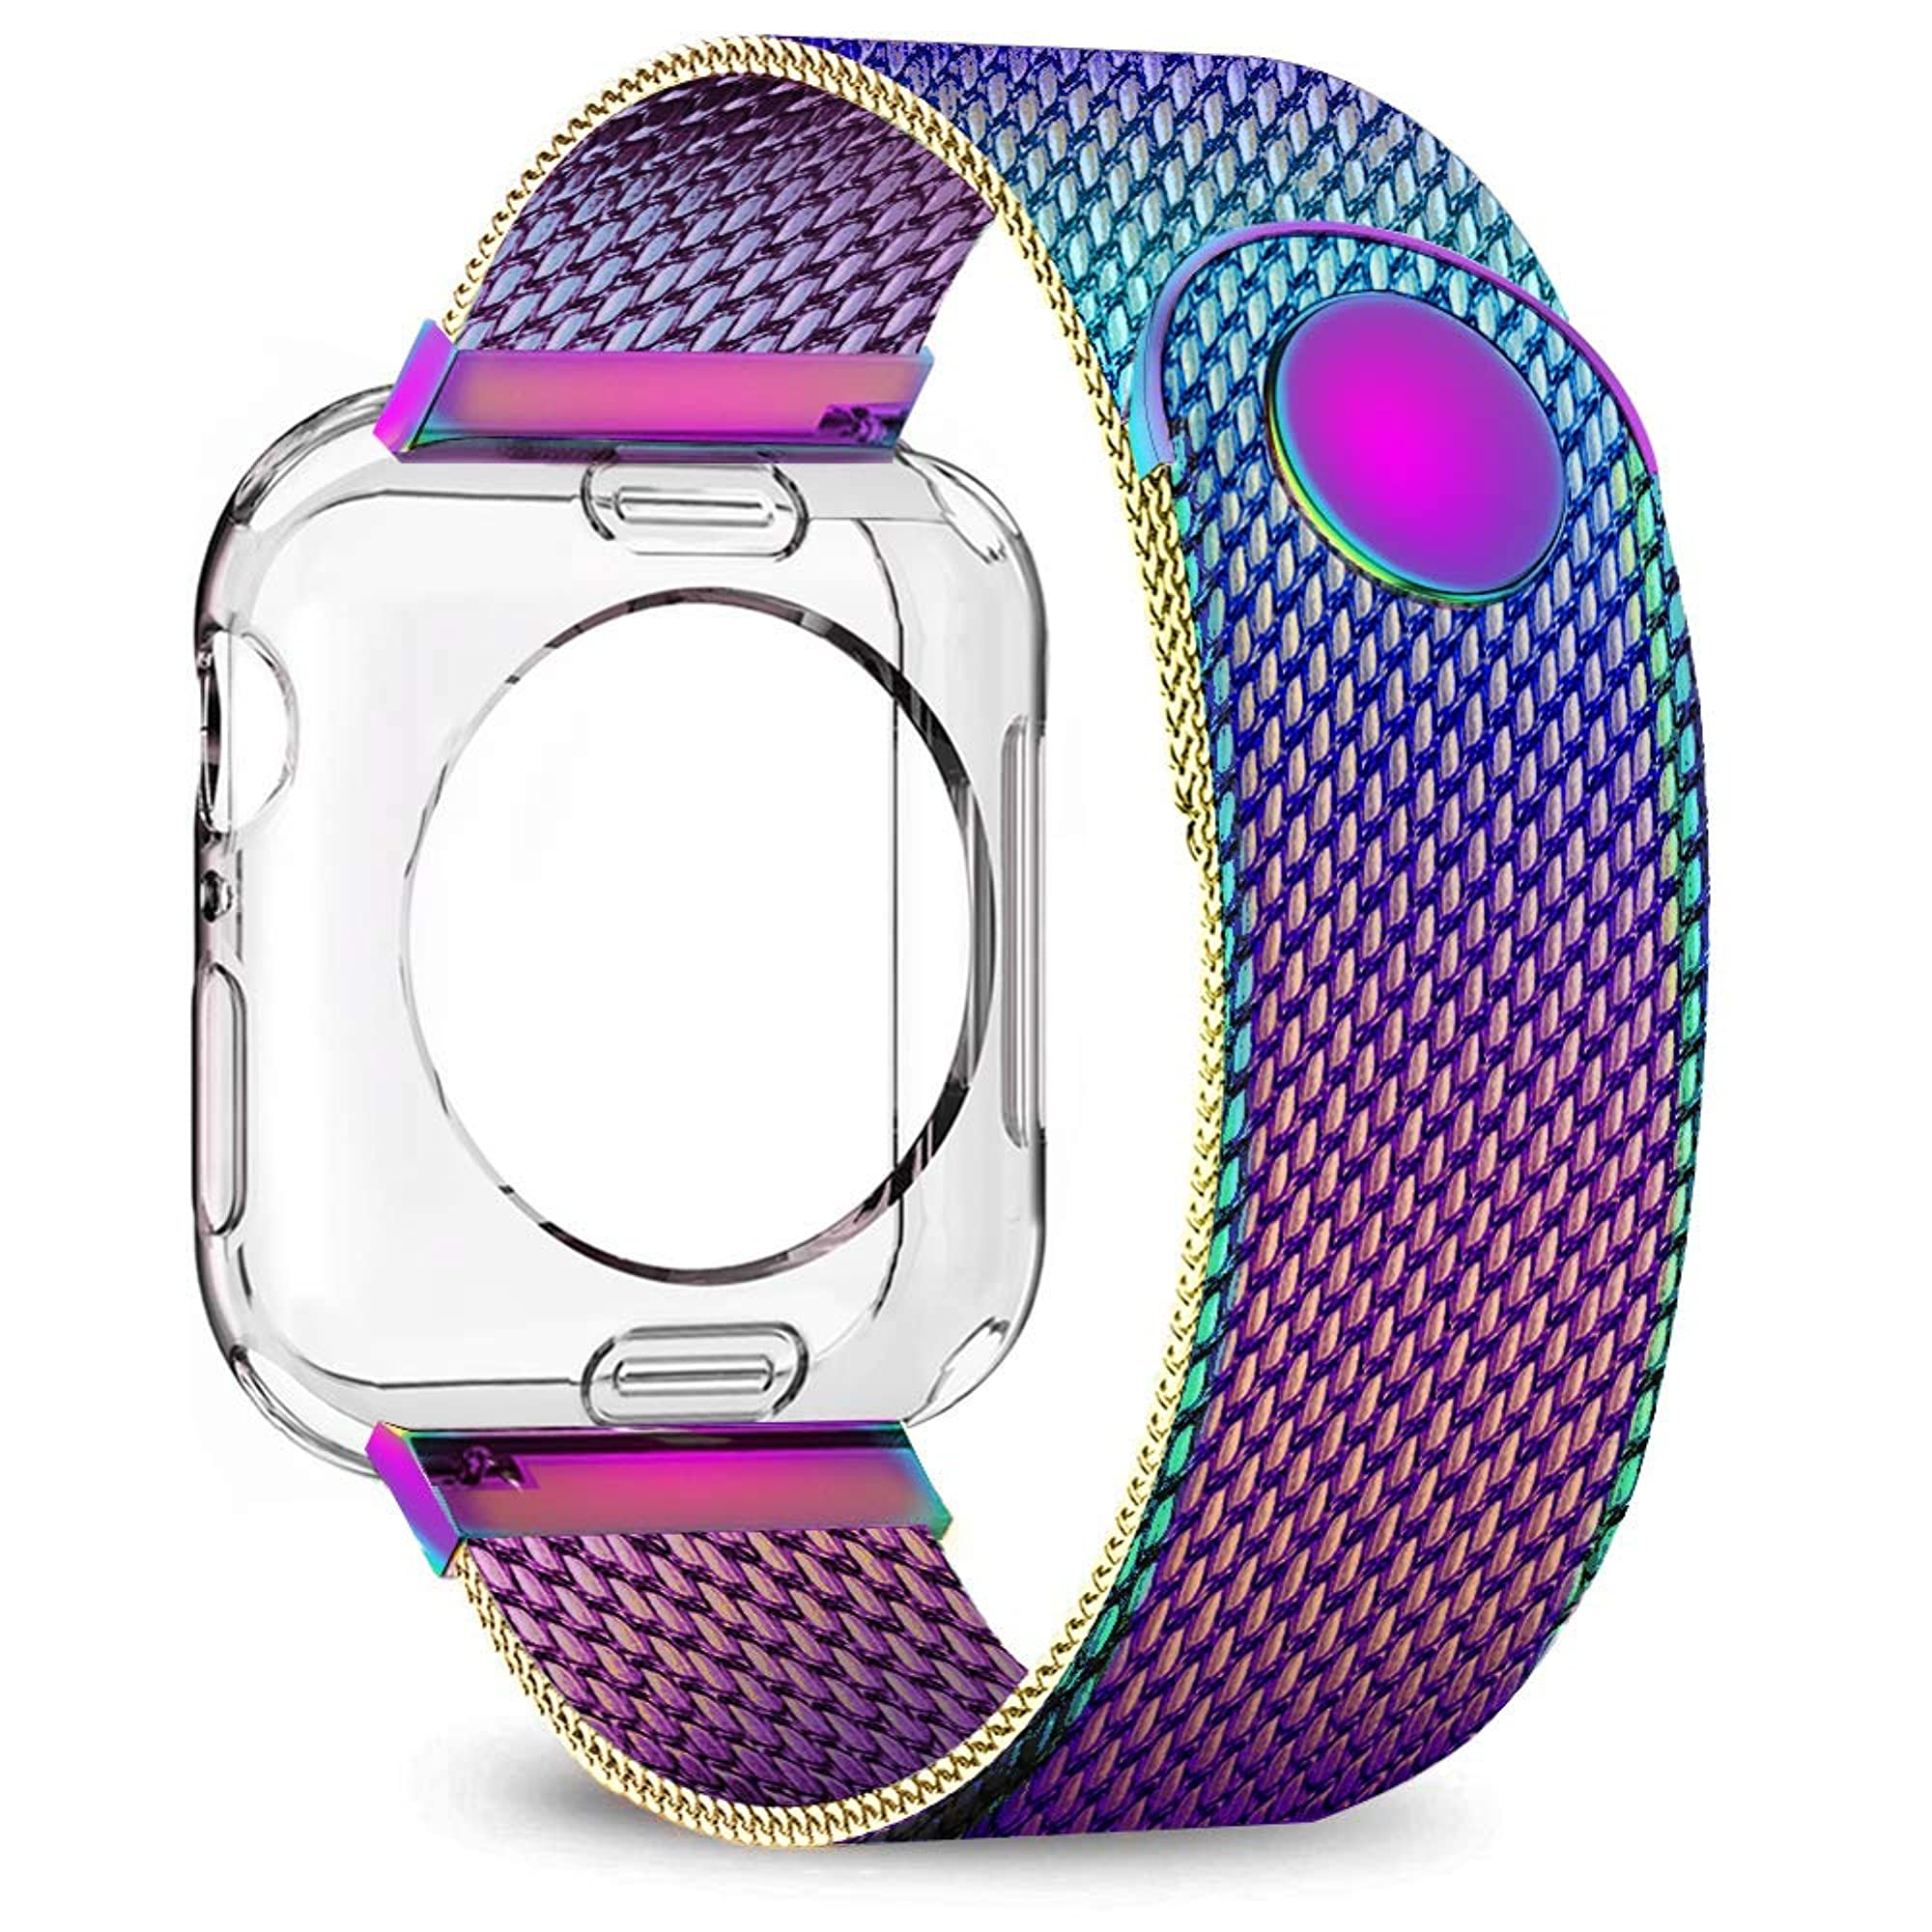 Adjustable Watch Band With Shell Protector